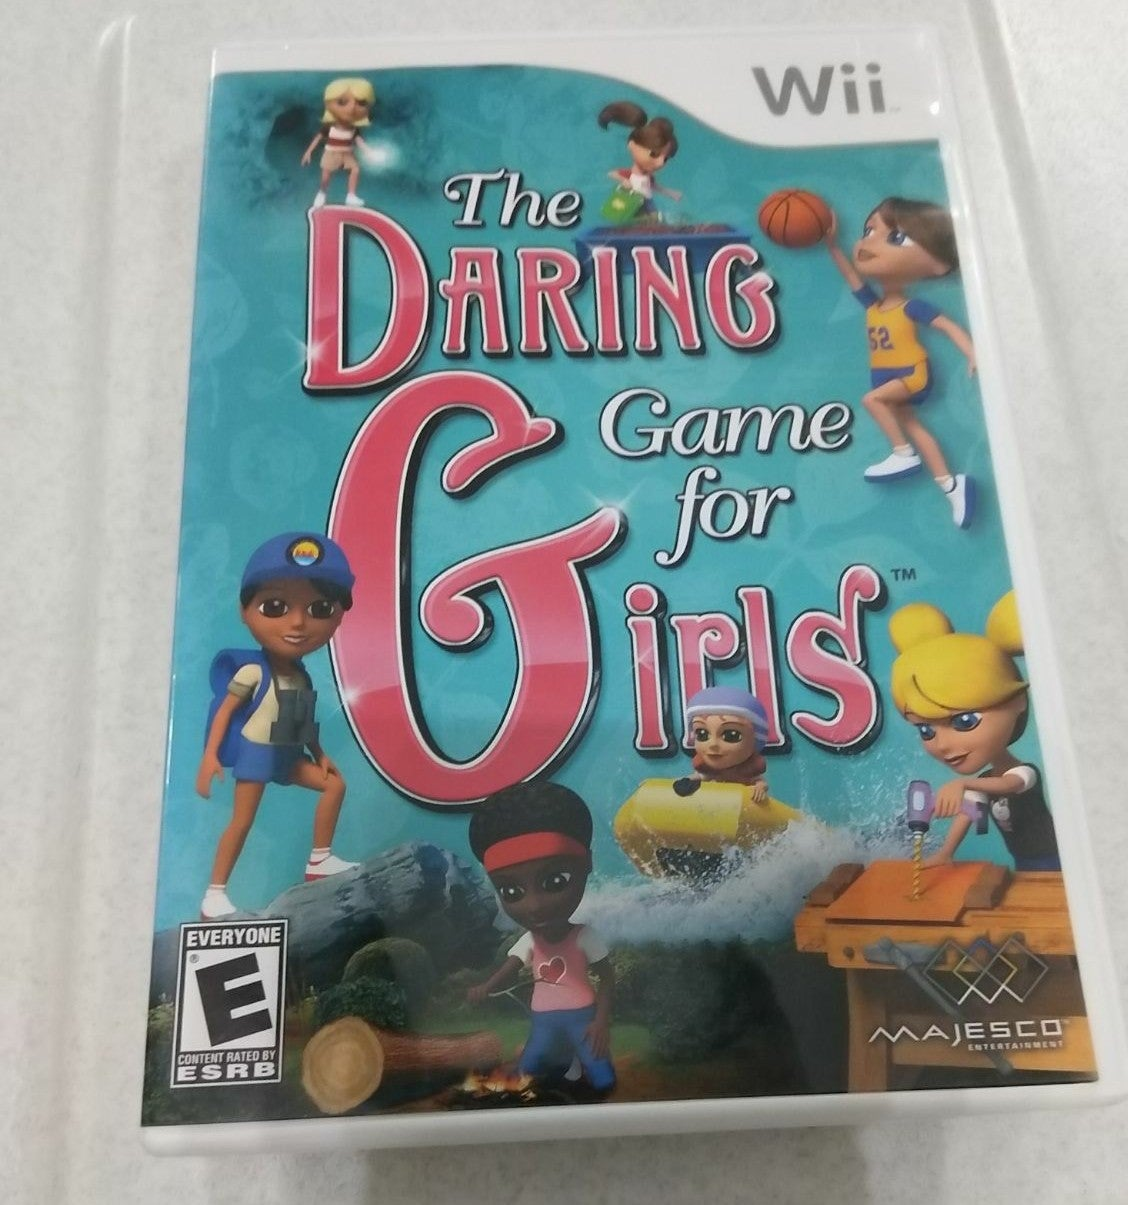 Majesco Wii game (The Daring Game for Gi